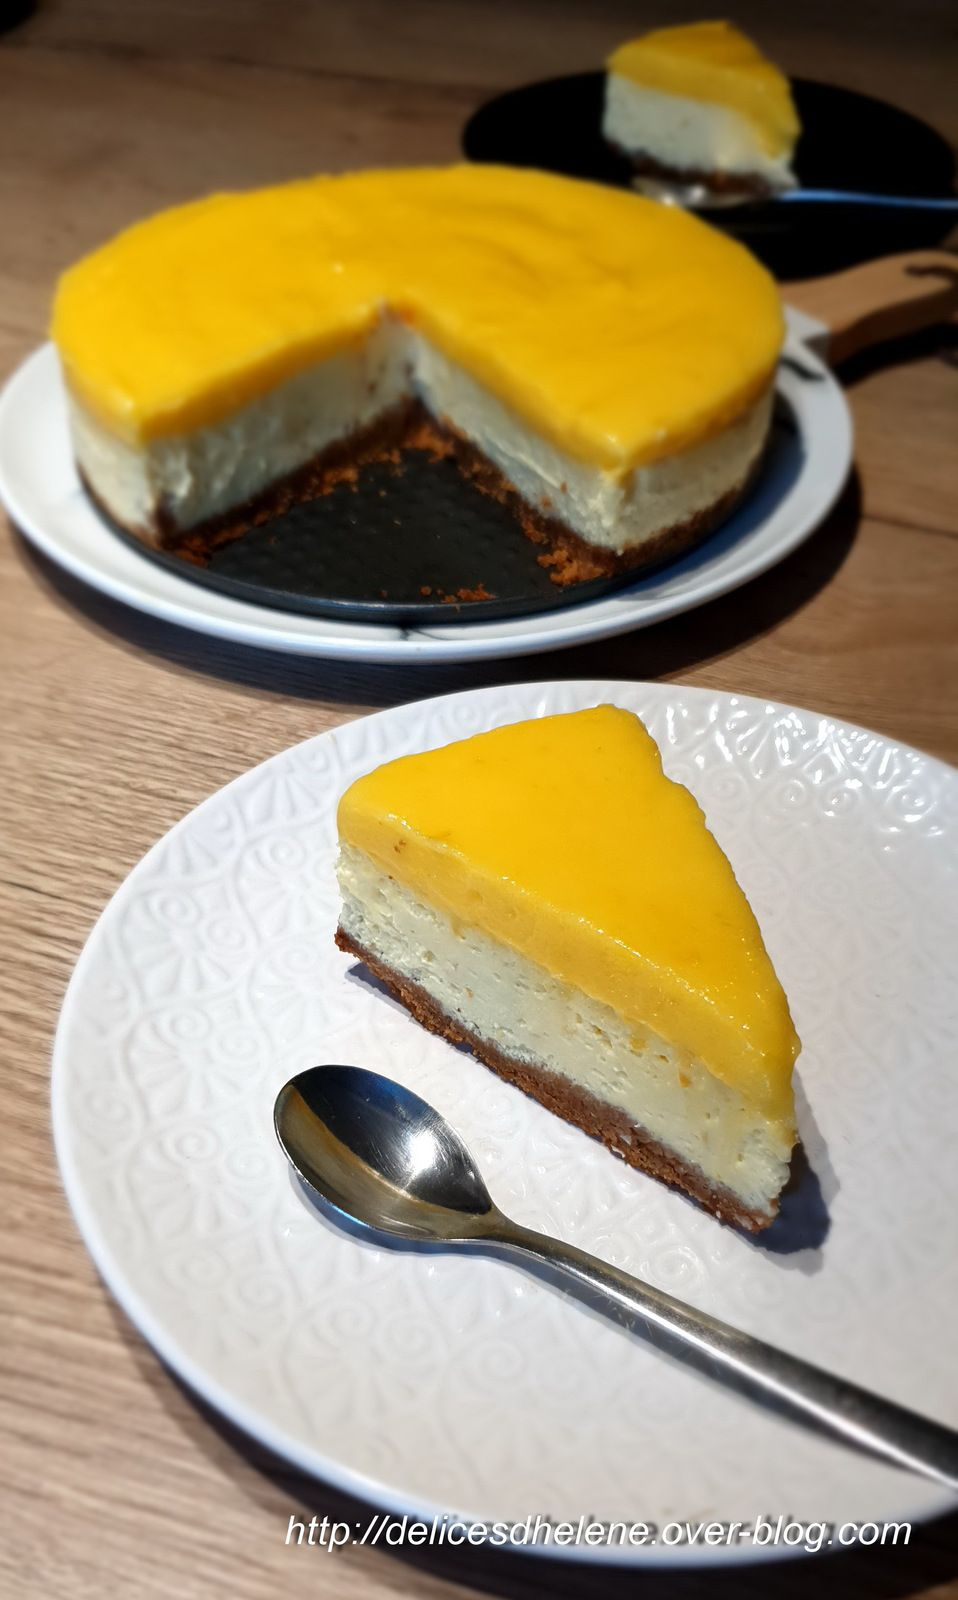 CHEESECAKE CITRON-LEMON CURD